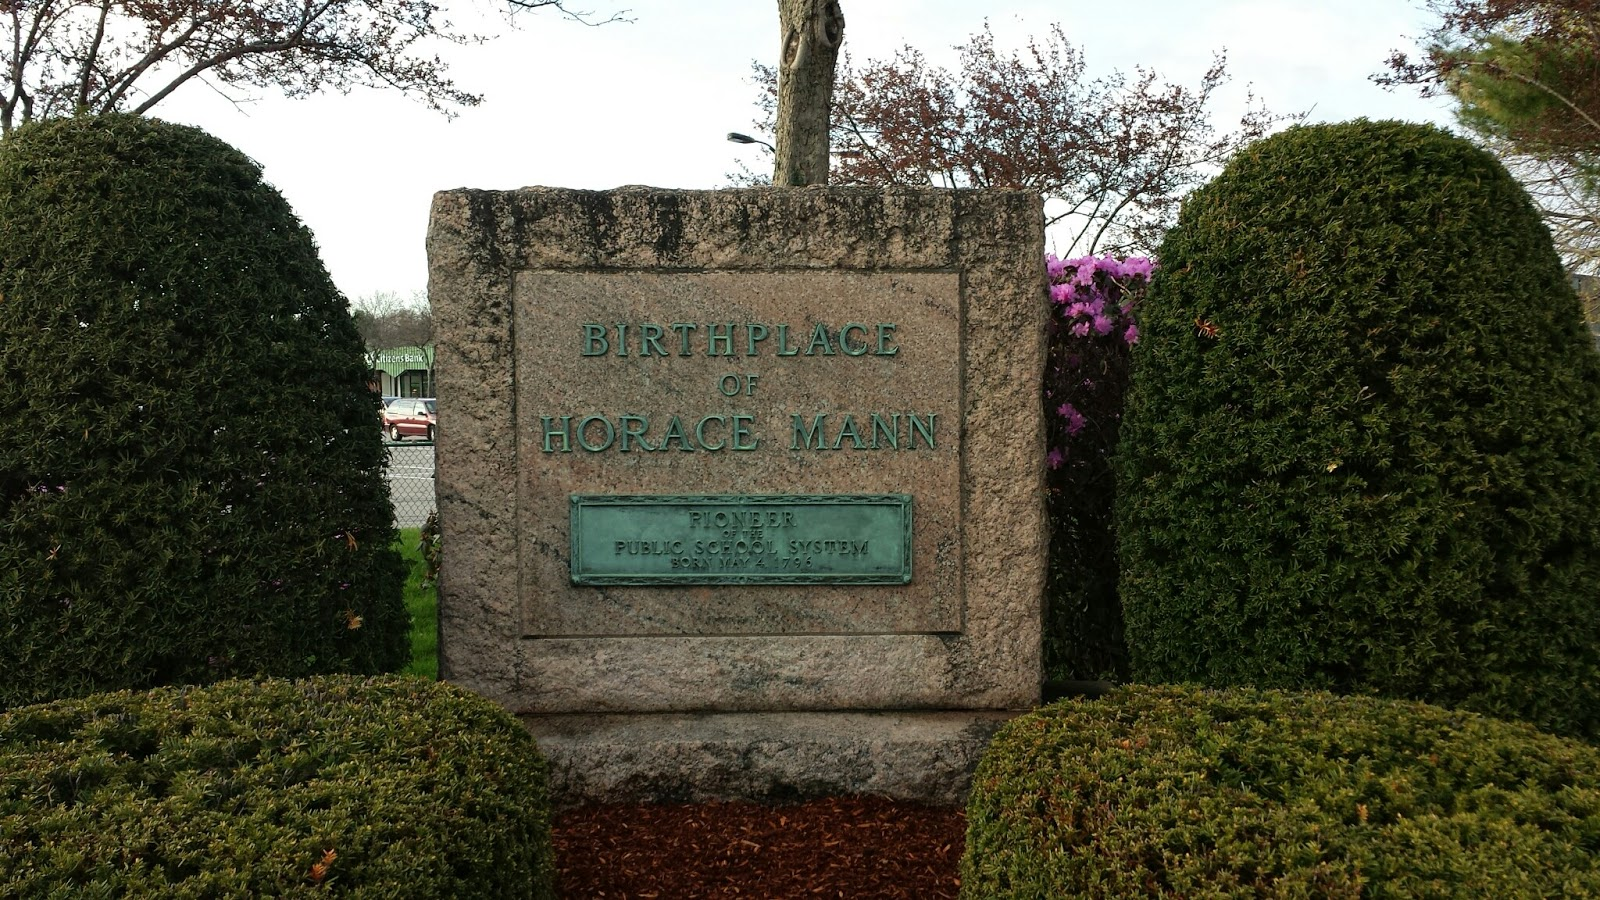 Horace Mann birthplace monument - Shaw's Plaza